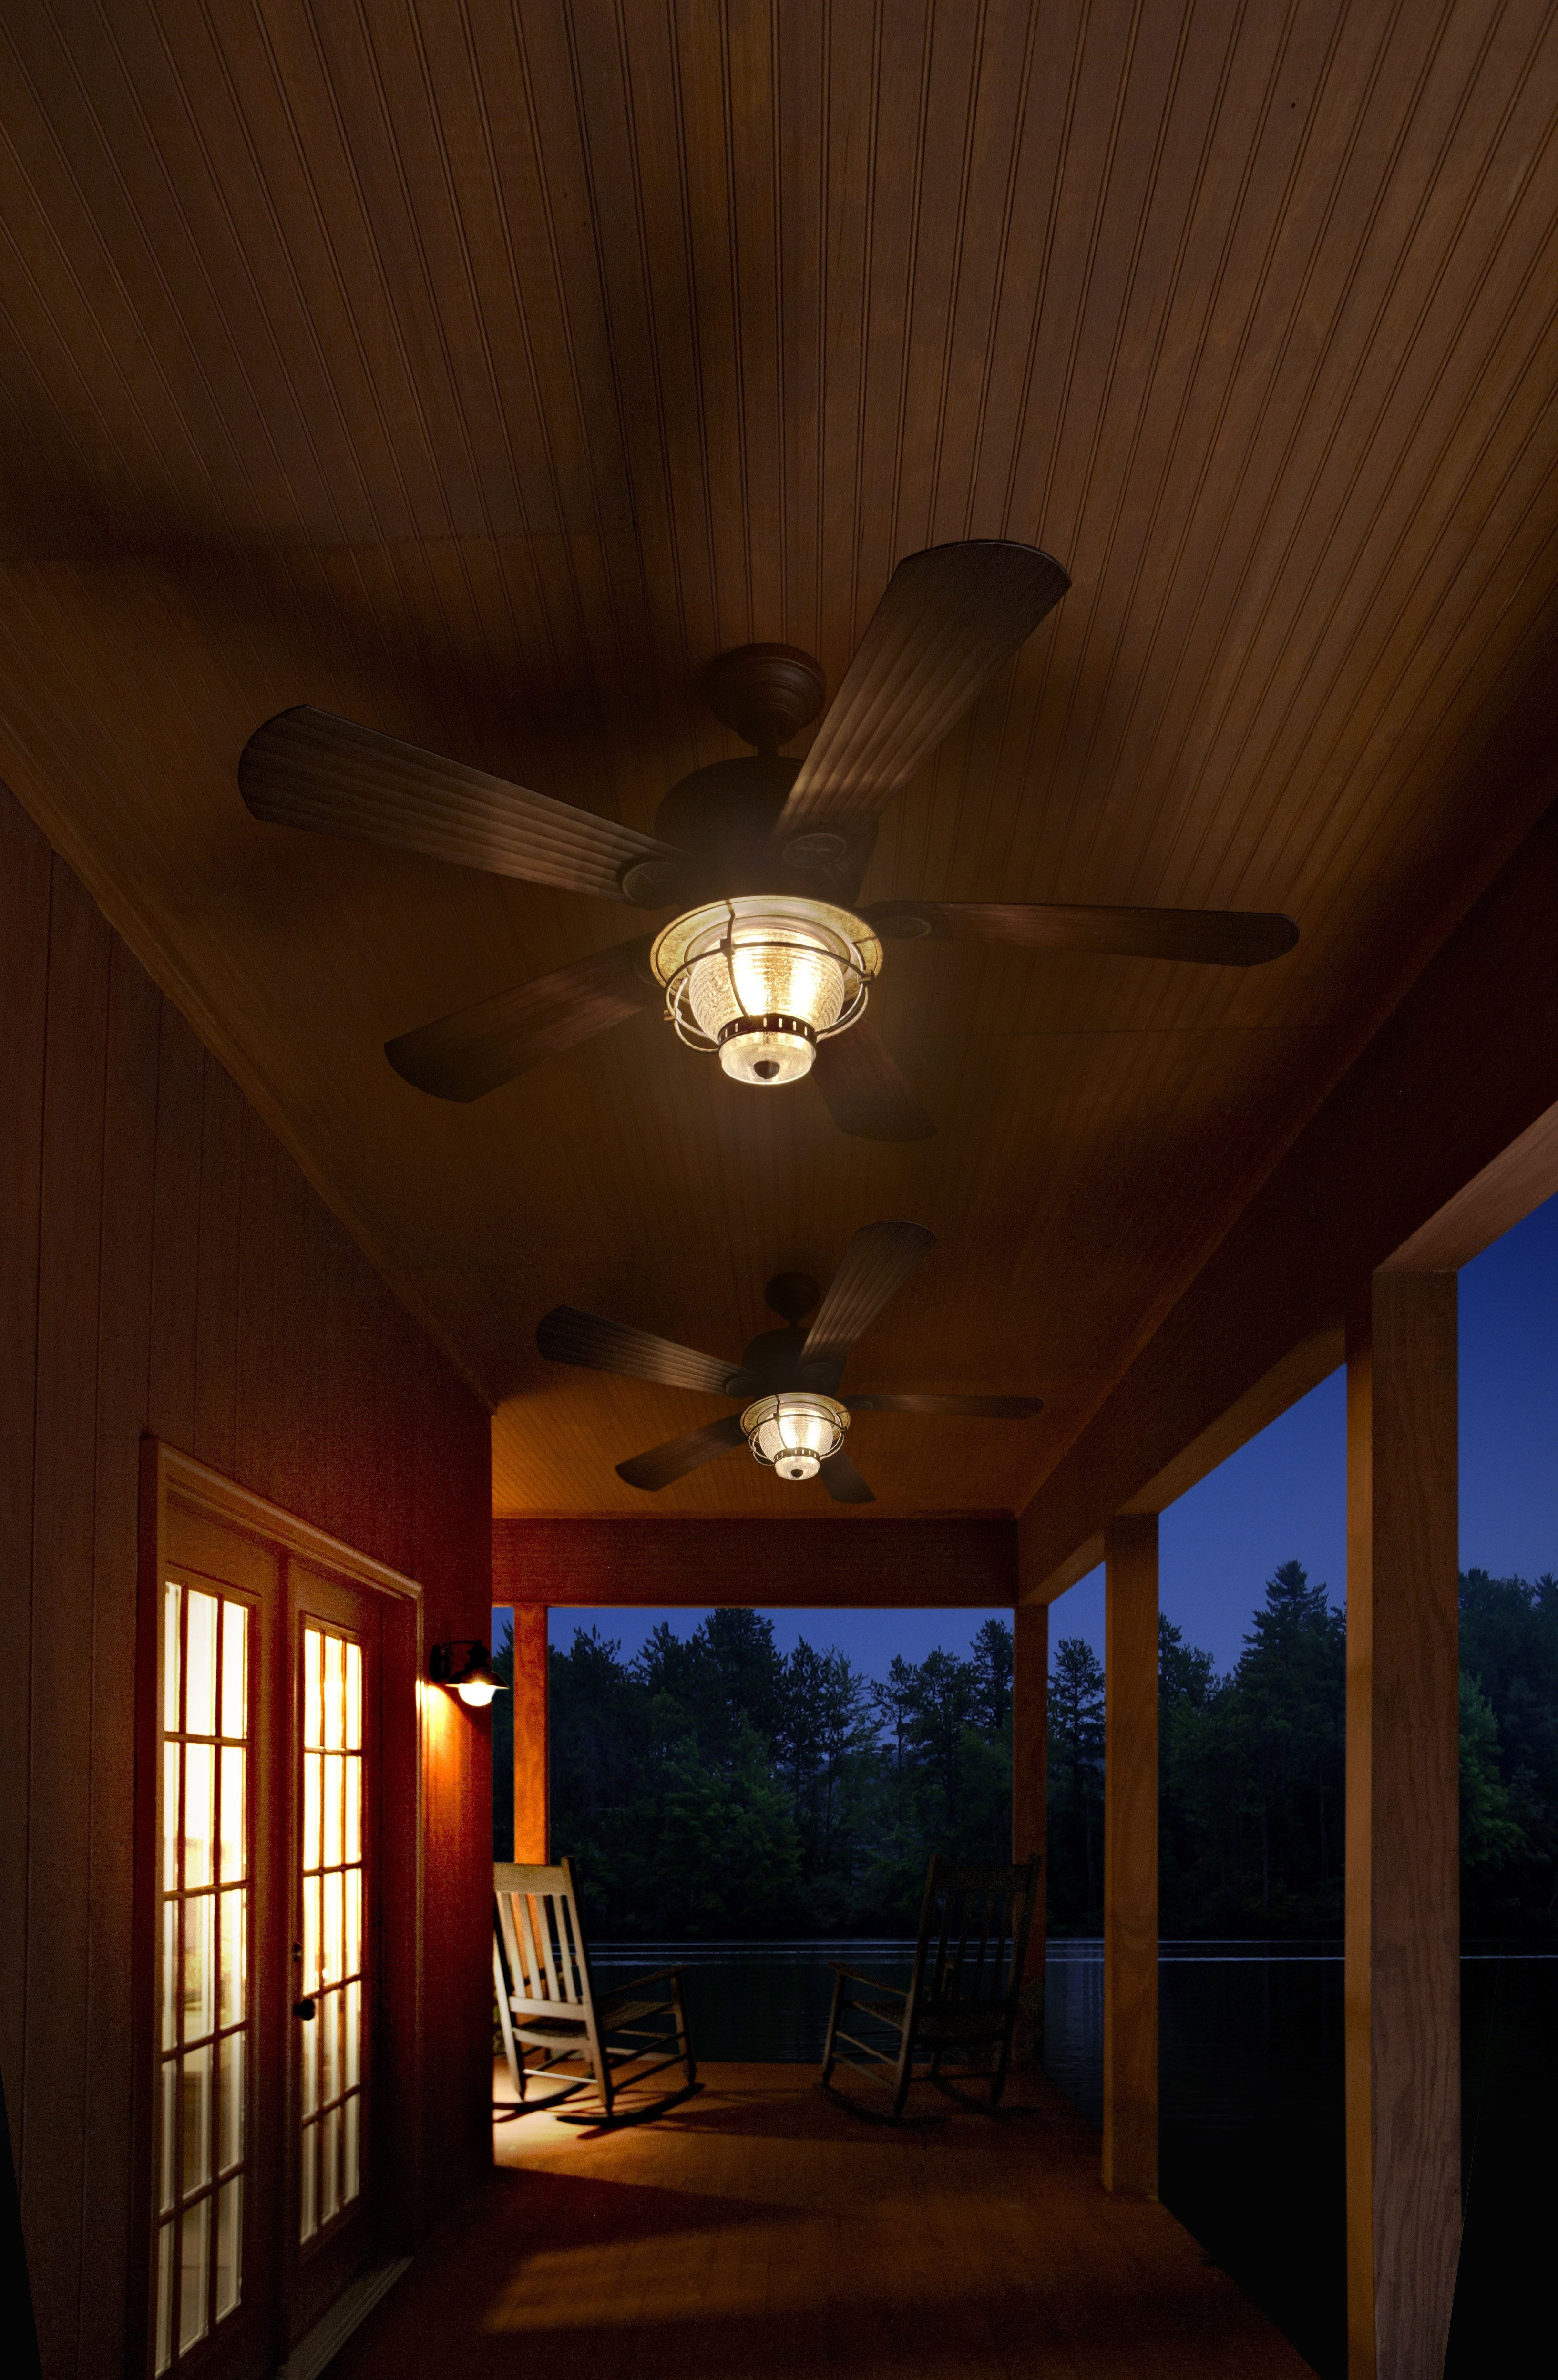 Well Known Outdoor Patio Ceiling Fans With Lights Within Be Prepared For The Summer Heat With Harbor Breeze Outdoor Ceiling (View 19 of 20)